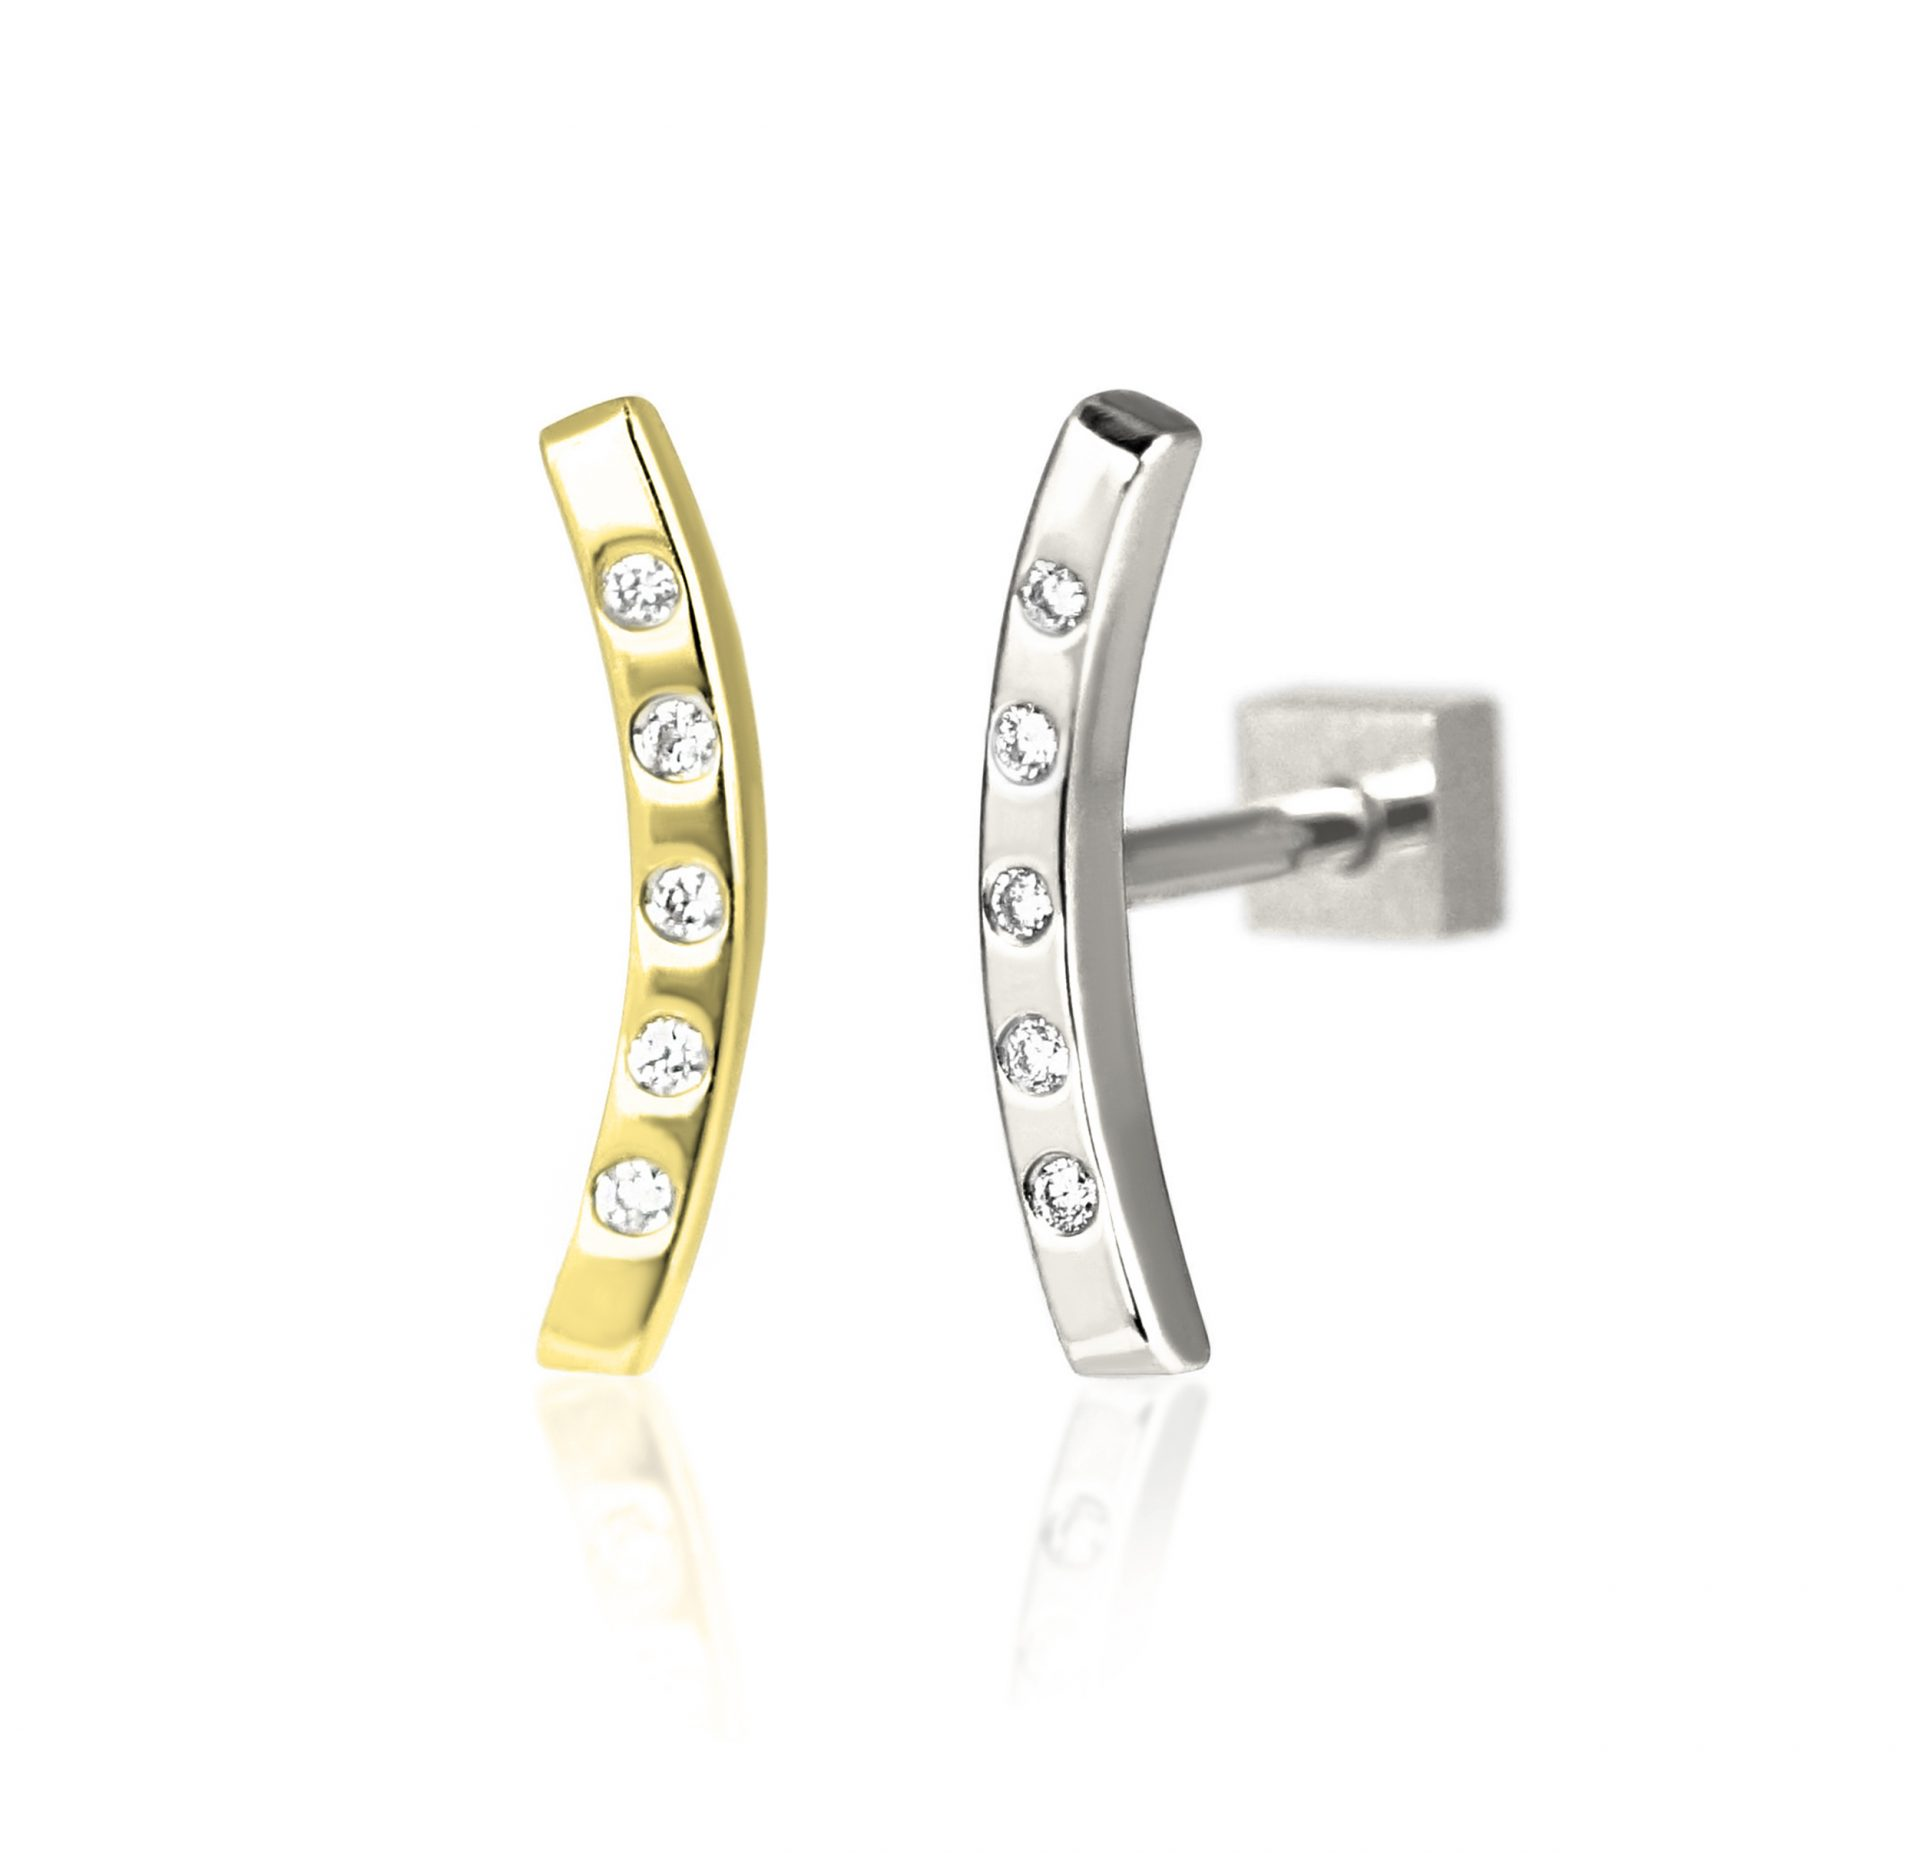 18k-yellow-white-gold-curved-bow-shape-earring-set-with-round-brilliant-cut-natural-diamonds-lena-cohen-london